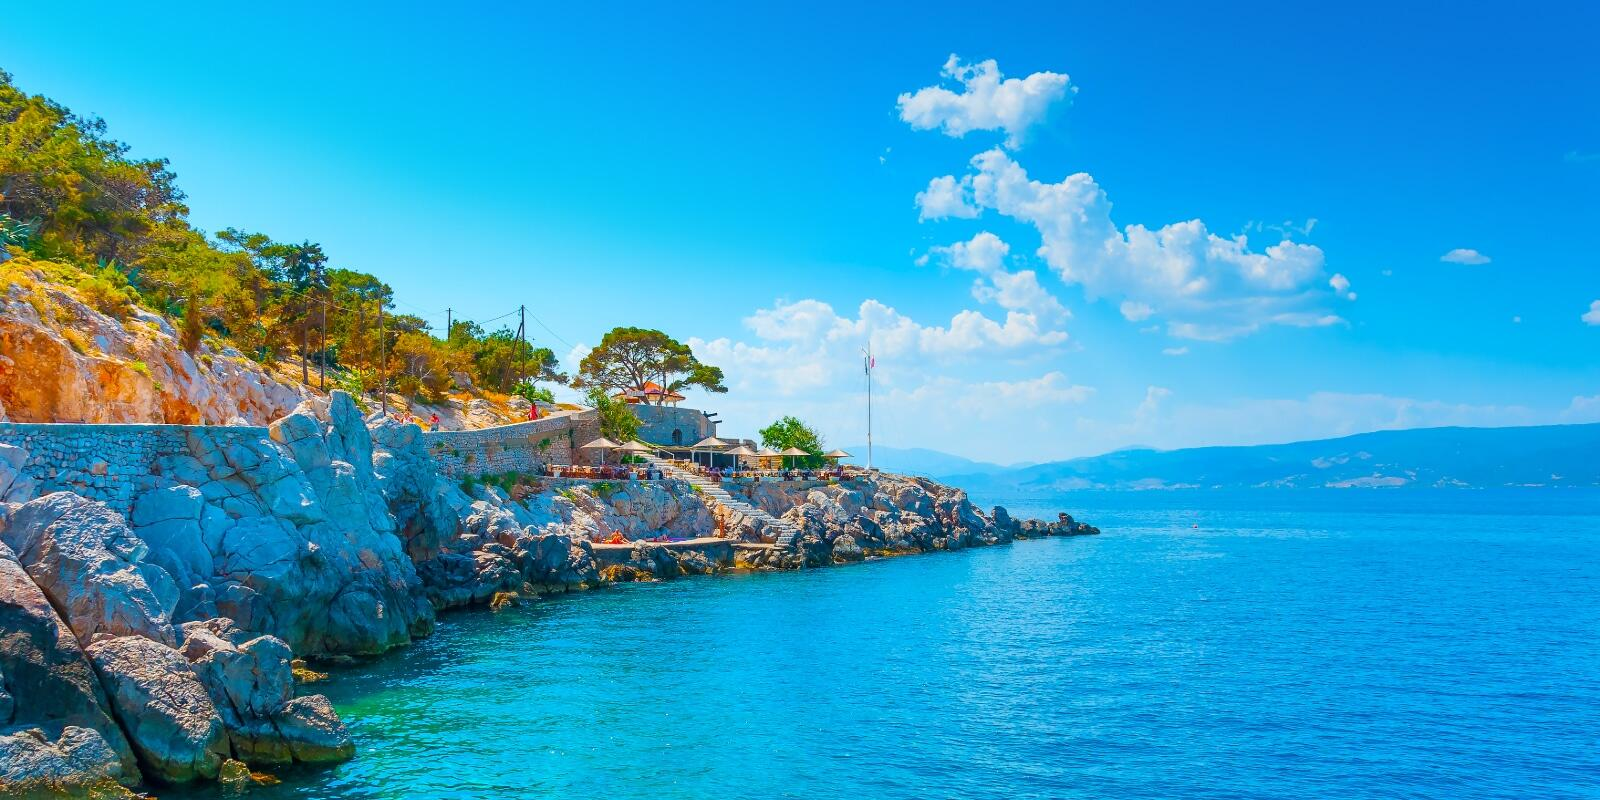 Nudist cruise: 7 nights 6 days onboard exploring 4-5 of the SARONIC islands near ATHENS, with an experienced skipper